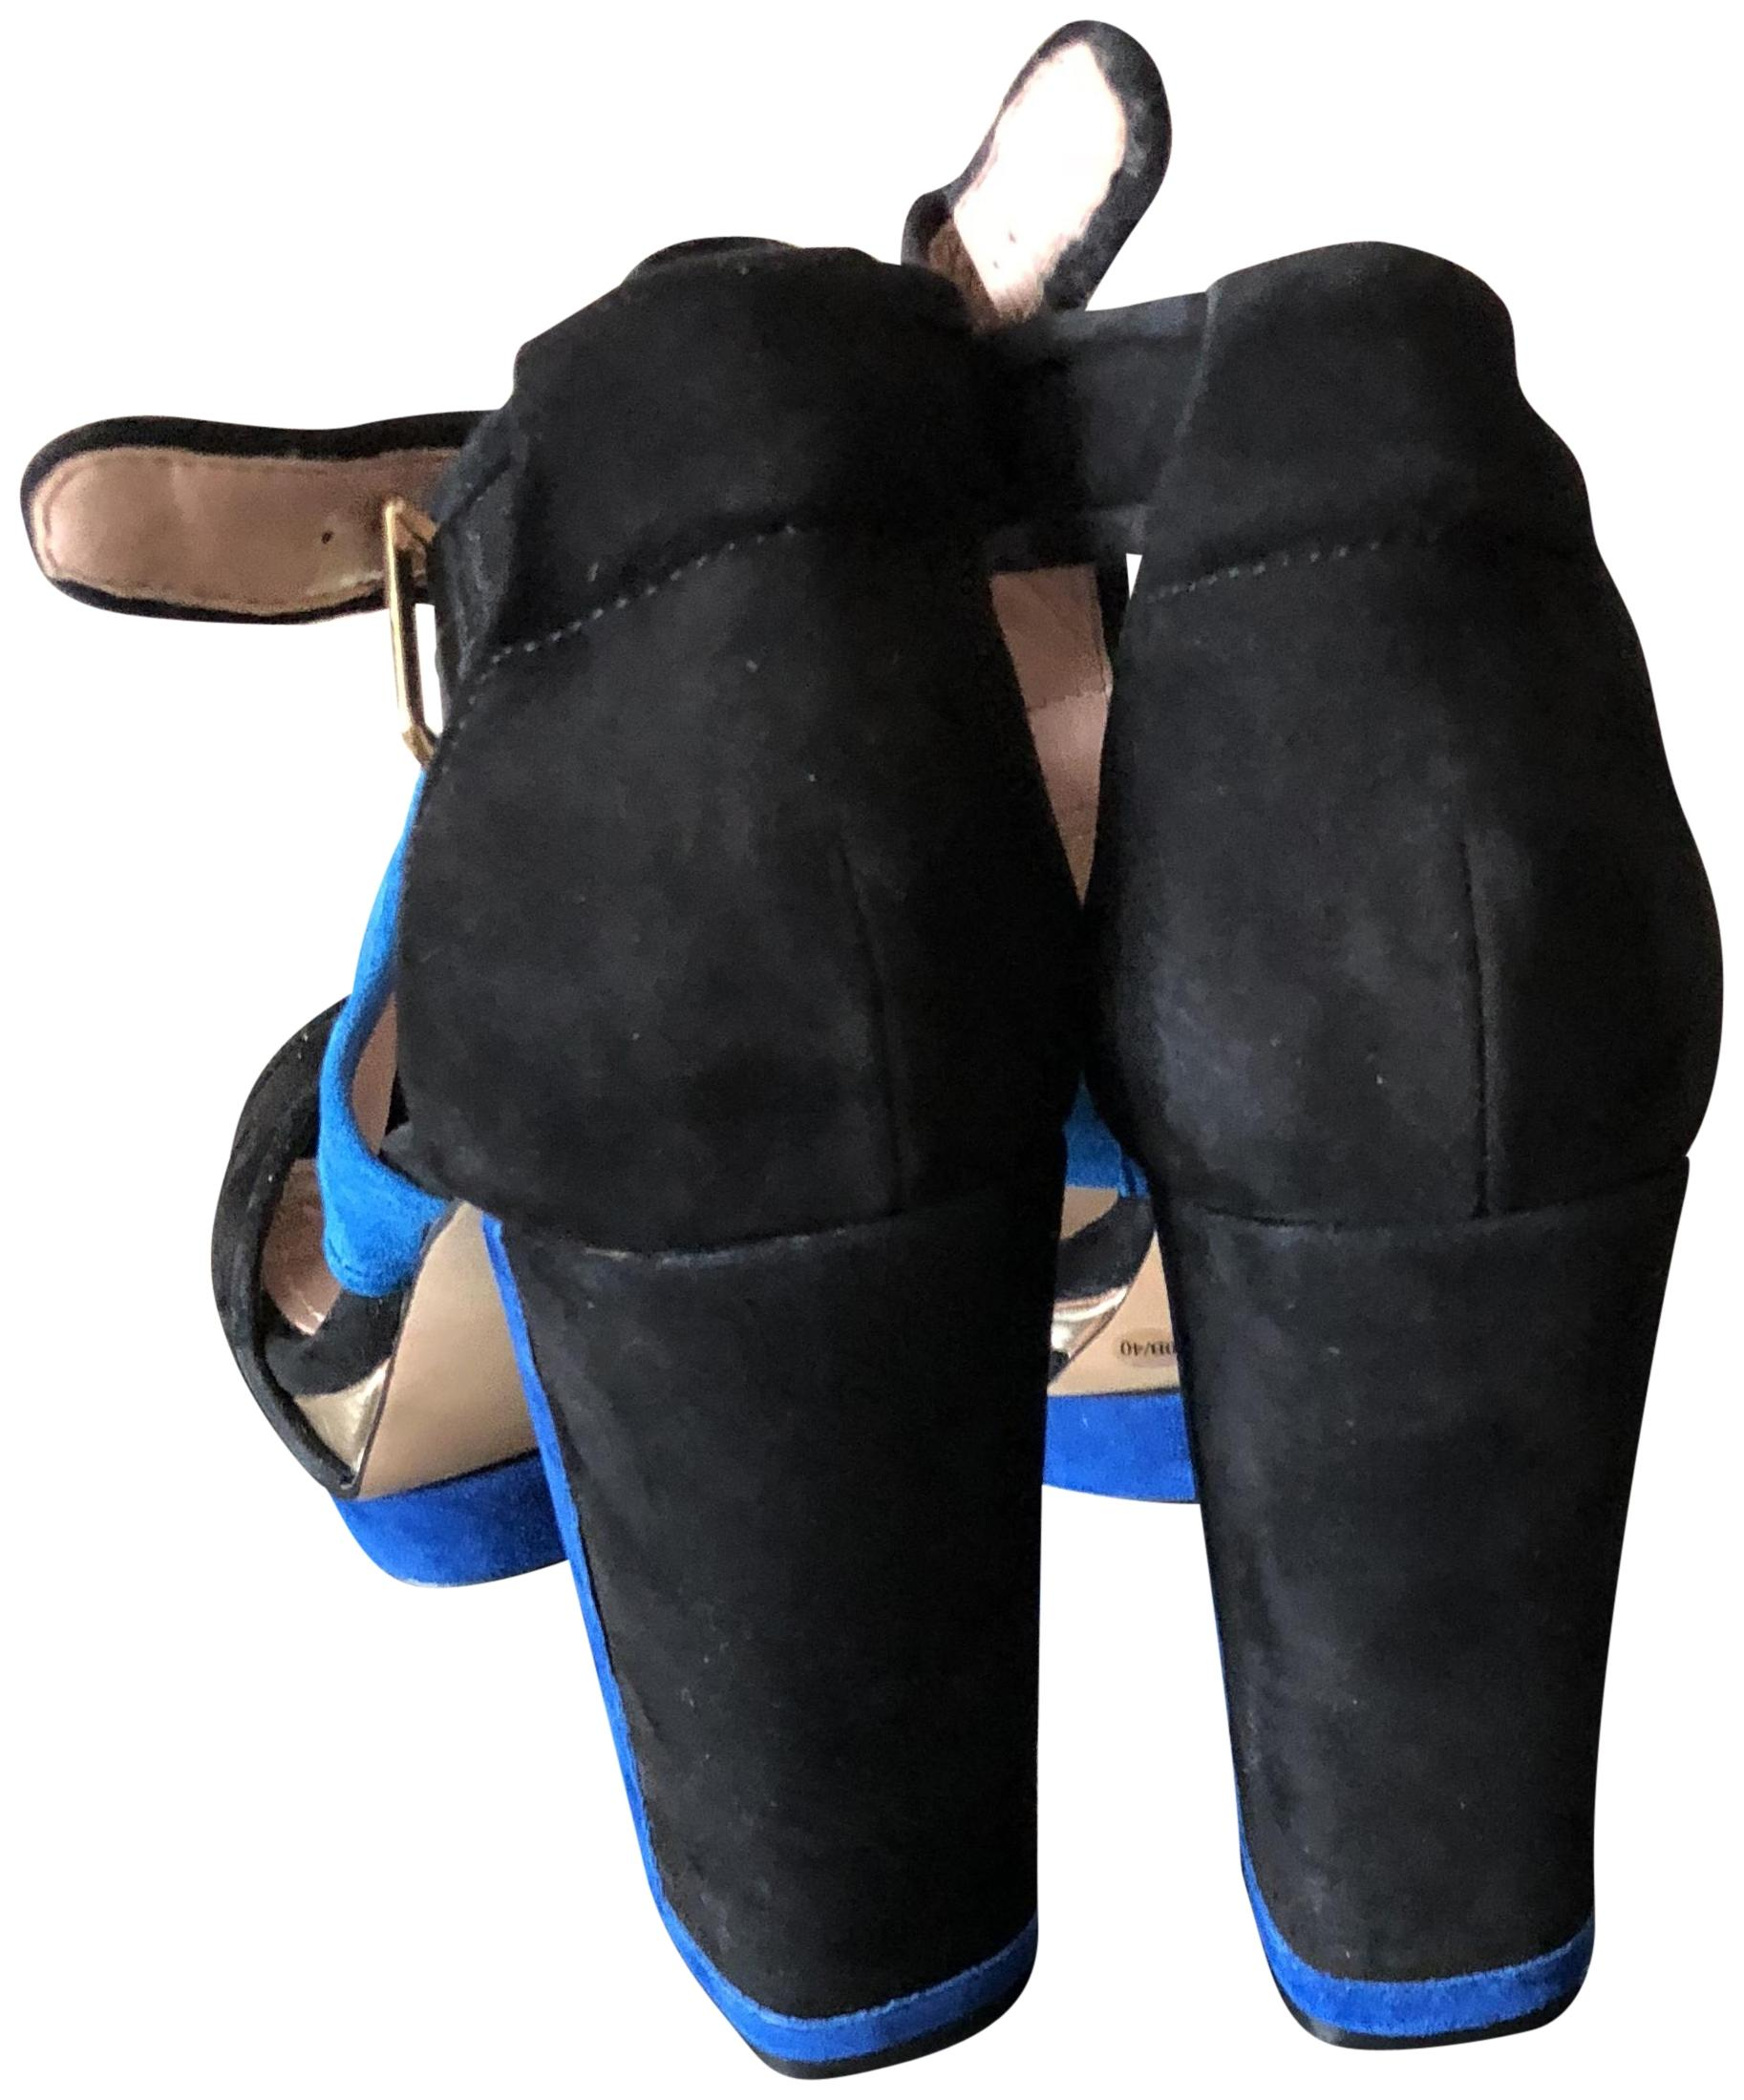 70088cf03791 Vince Camuto Blue Black True Sue Mirror Met Platforms Size US 10 10 10  Regular (M